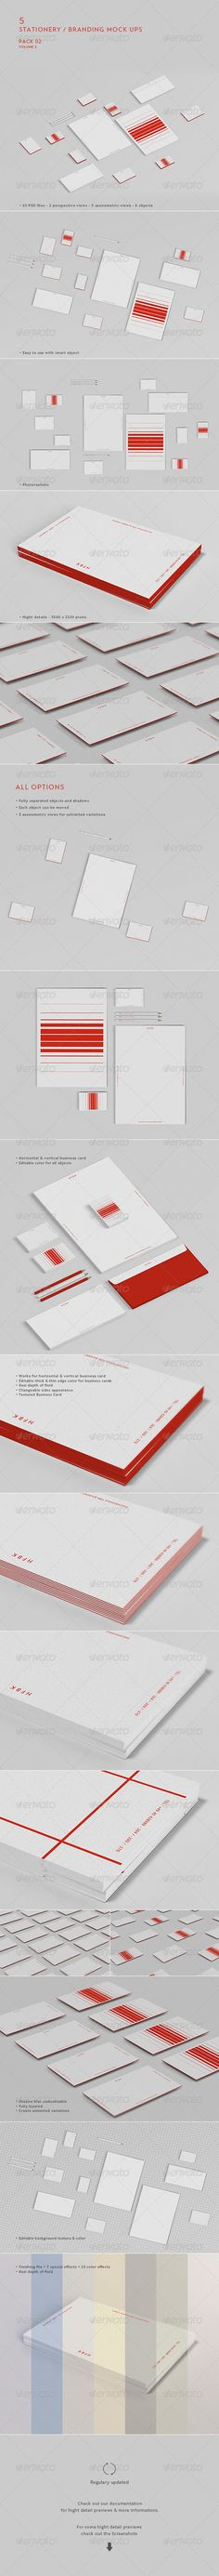 how to format a friendly letter%0A Description  This pack contains   highly detailed photorealistic mockups   These PSD files